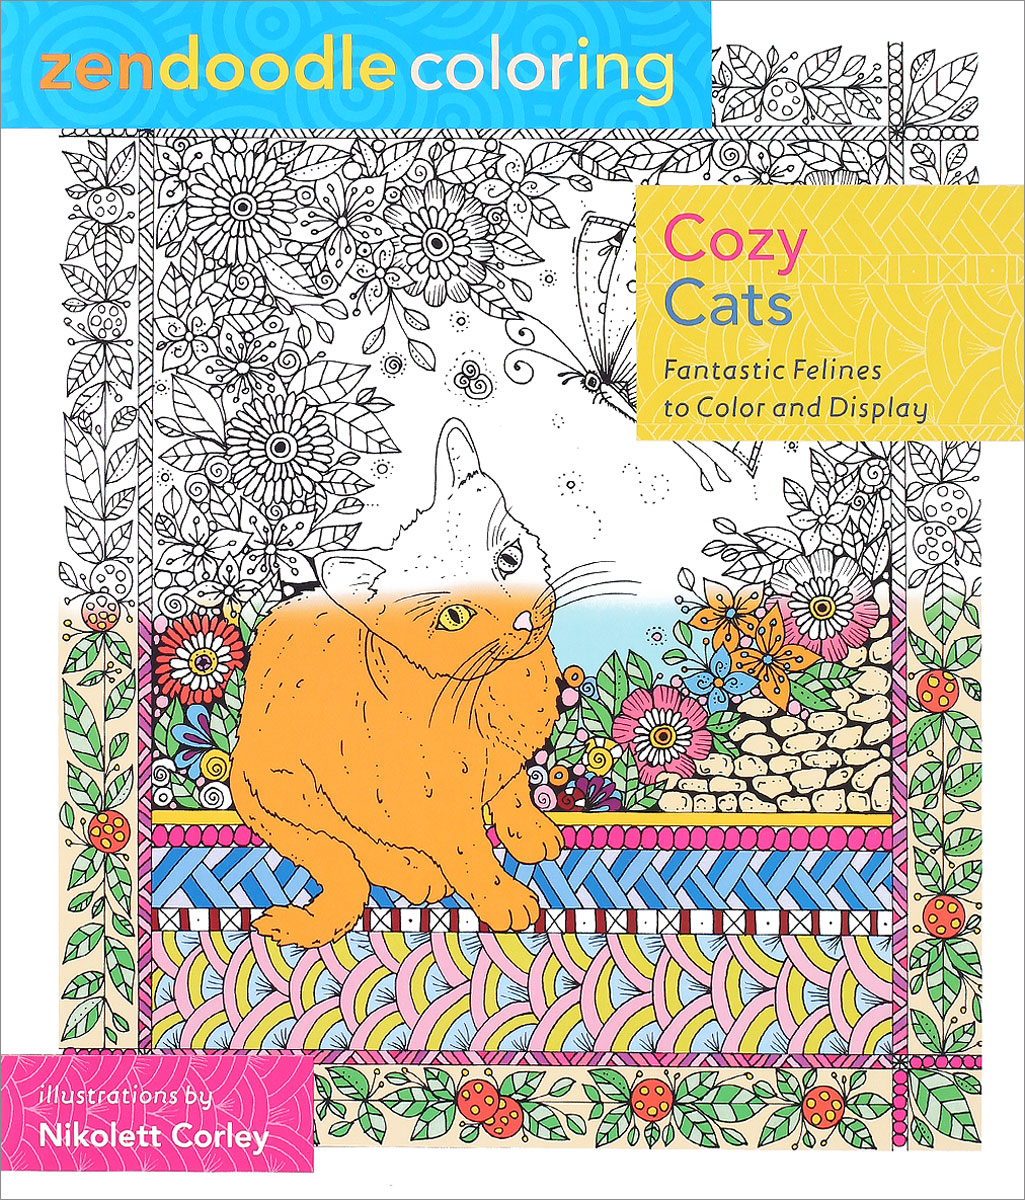 Zendoodle Coloring: Cozy Cats: Fantastic Felines to Color and Display www cozy home ru